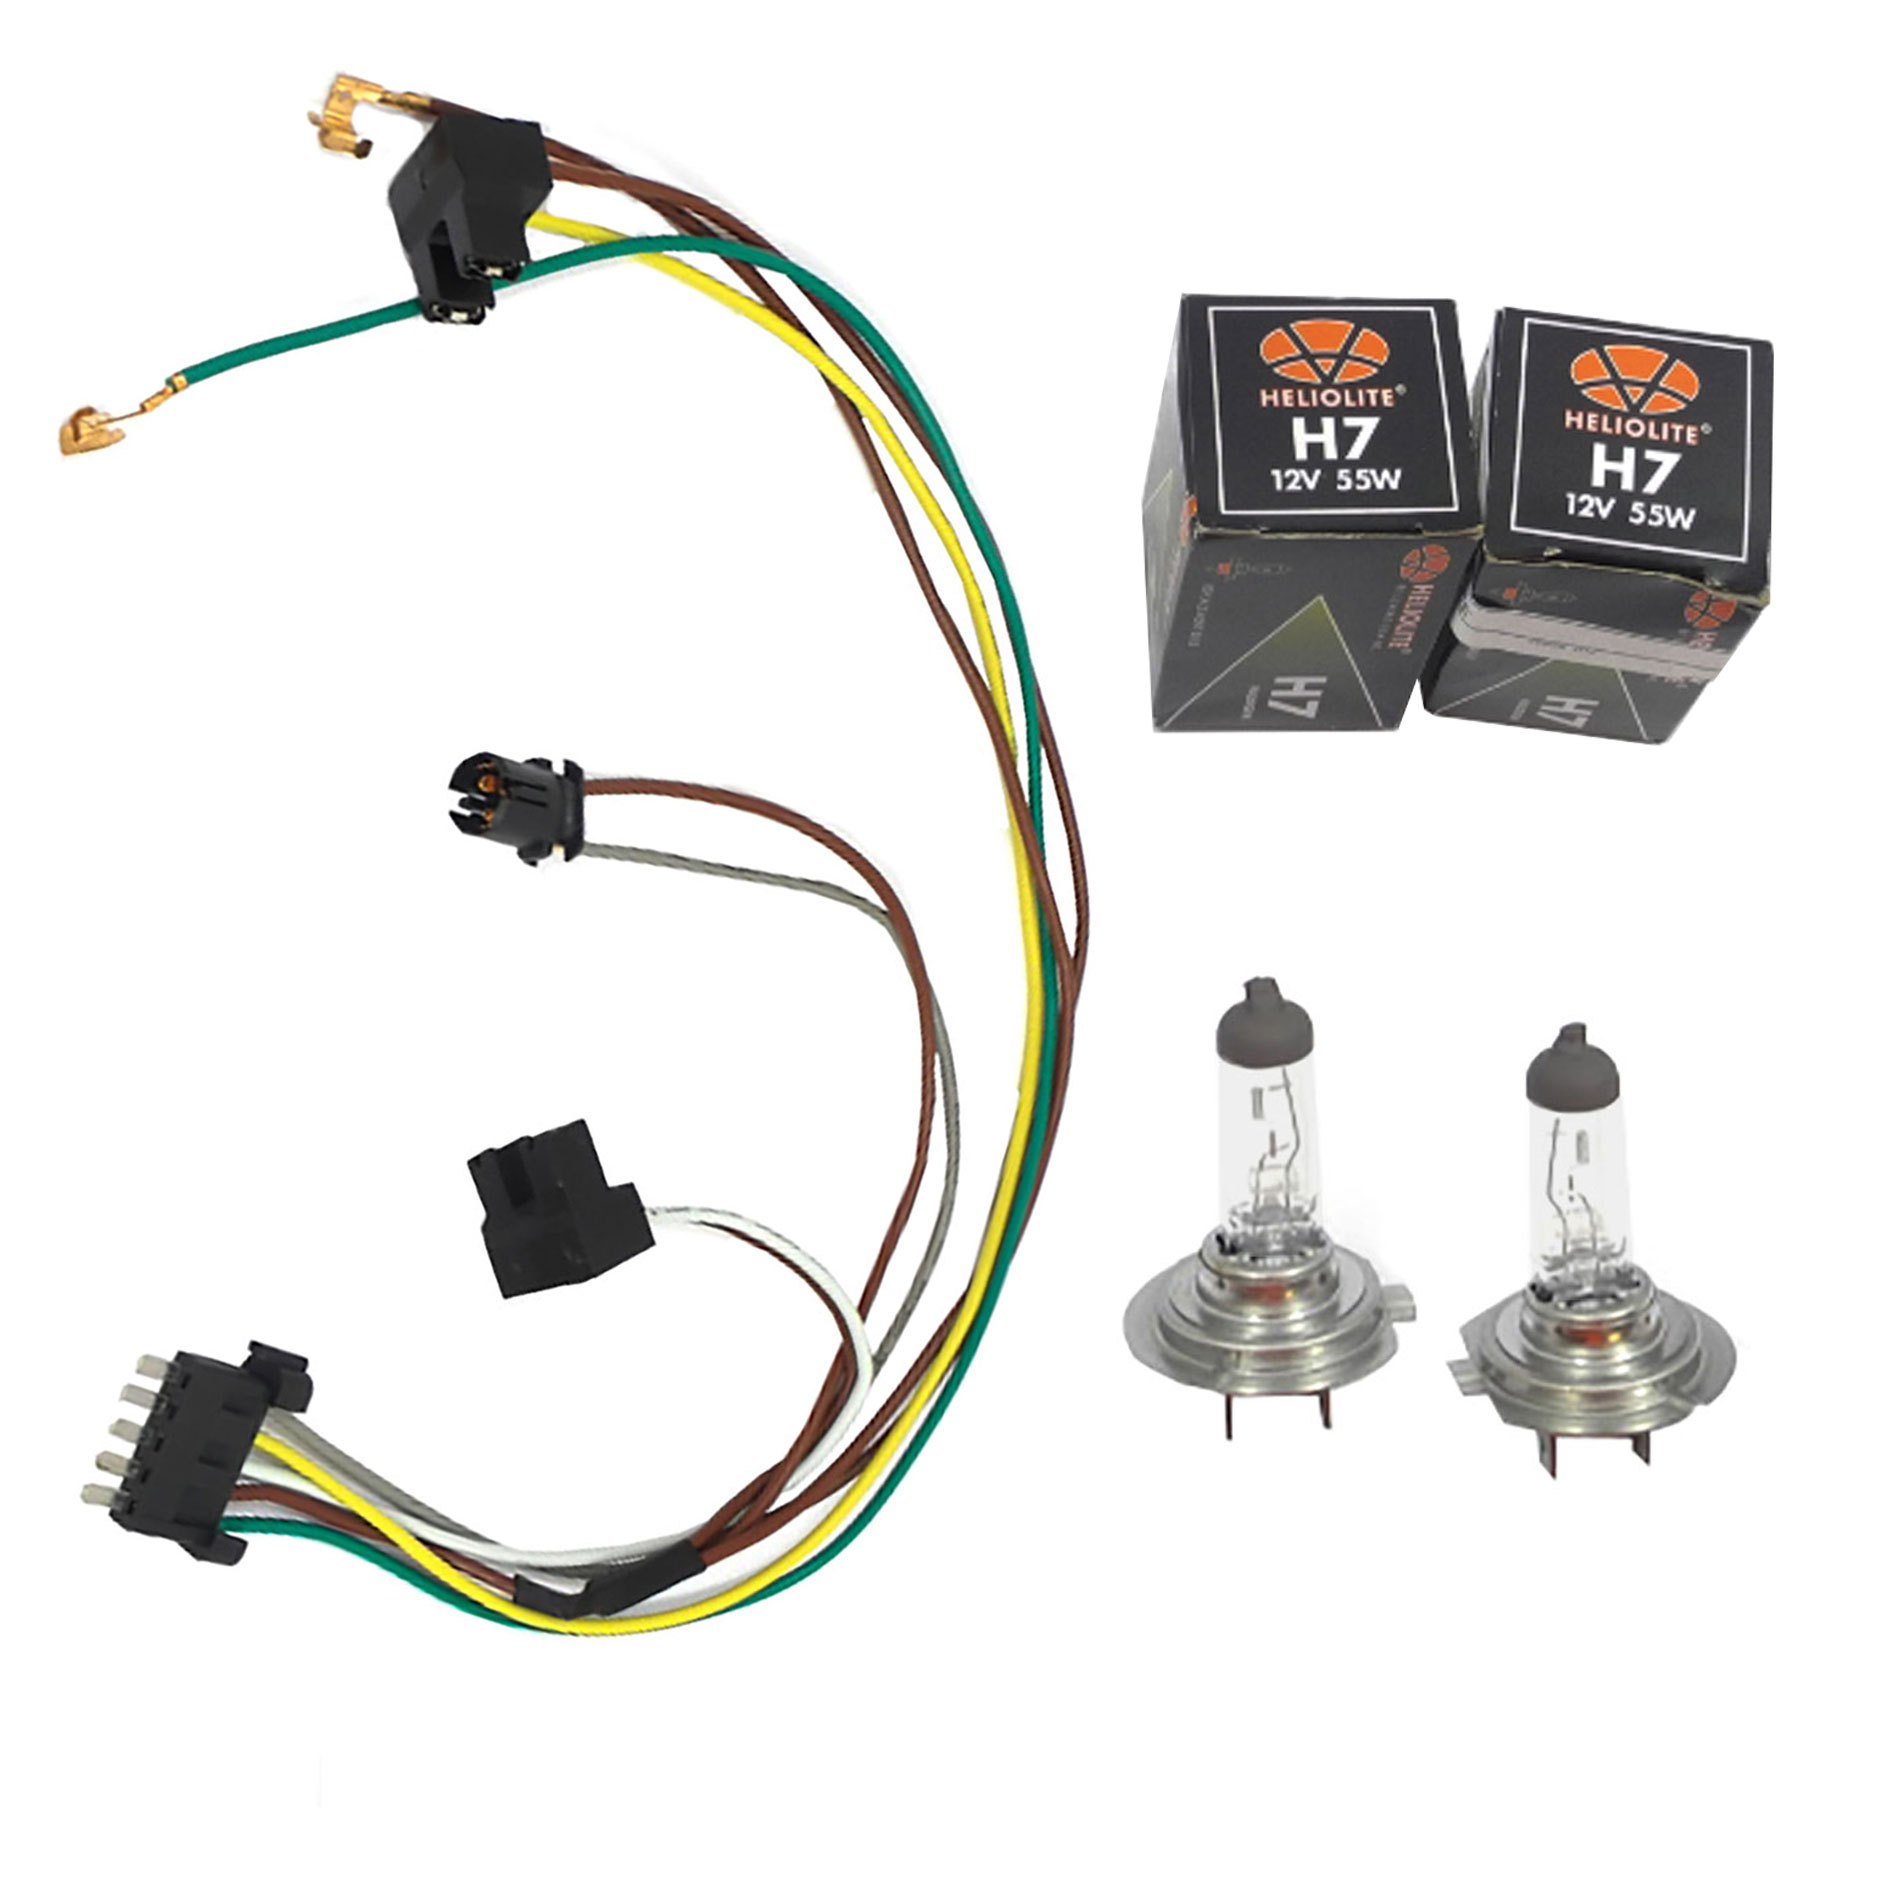 Details about For C230 C320 Benz Headlight Wiring Harness & Headlight on